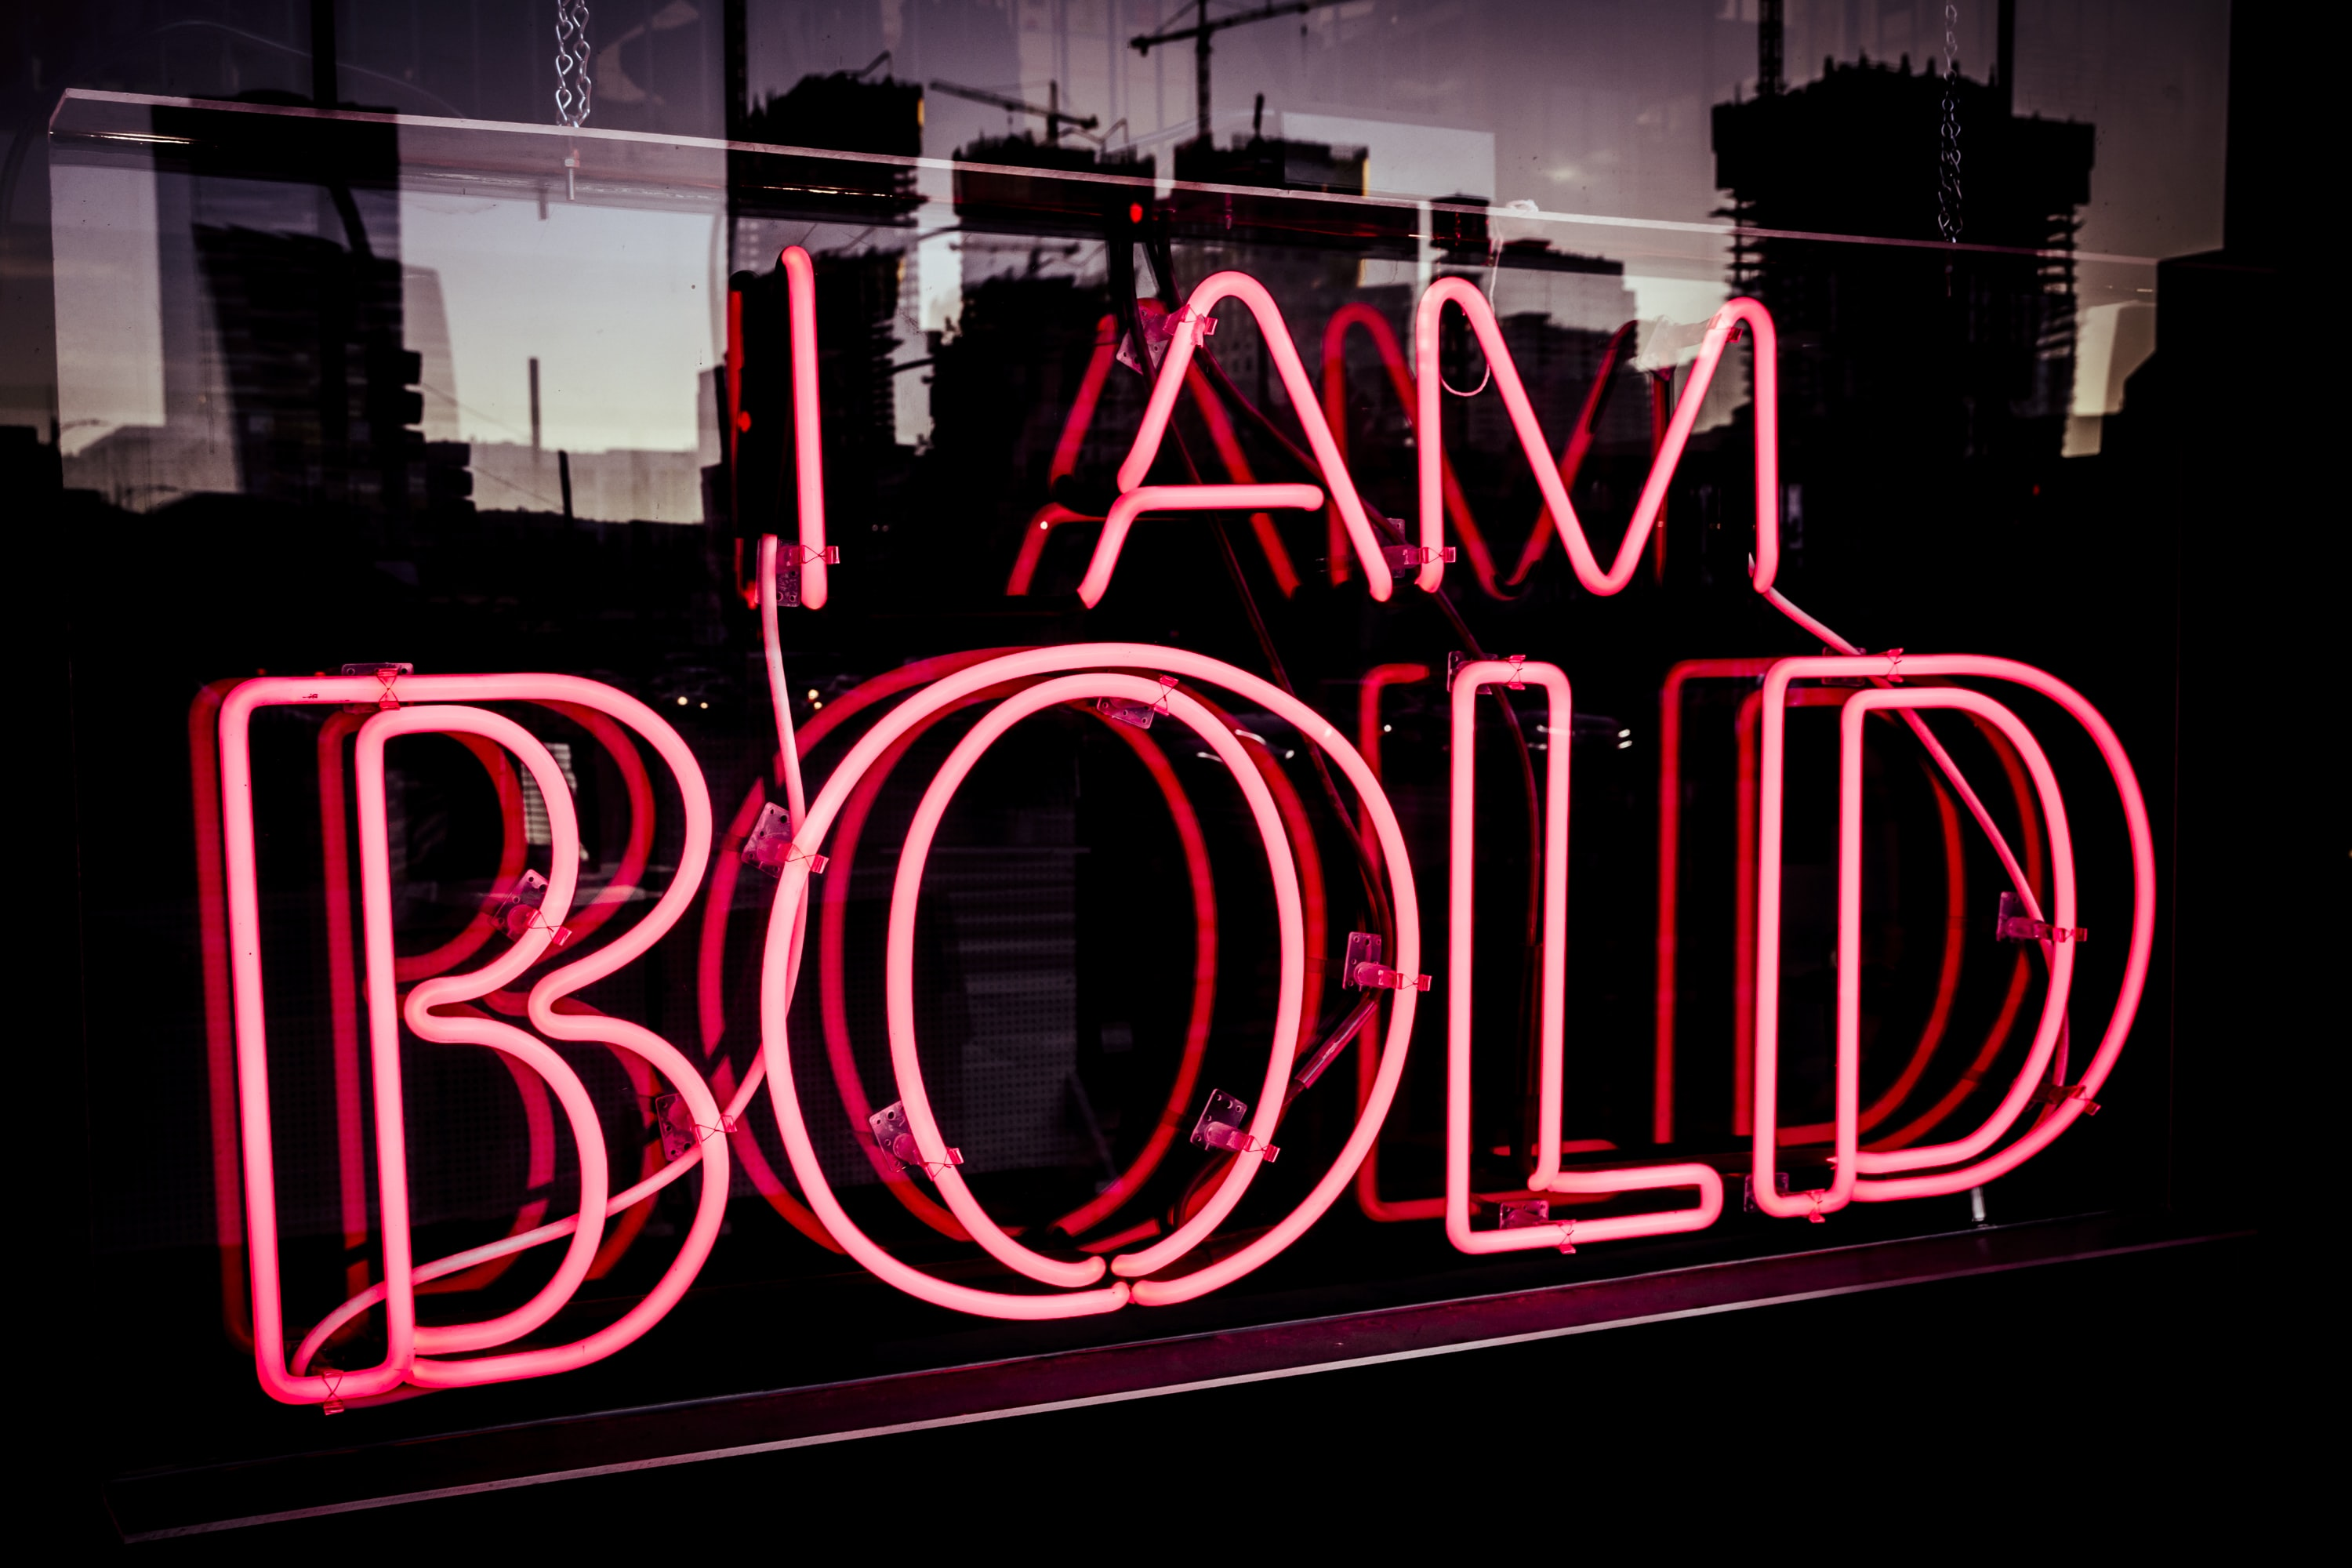 I Am bold neon signage at night time